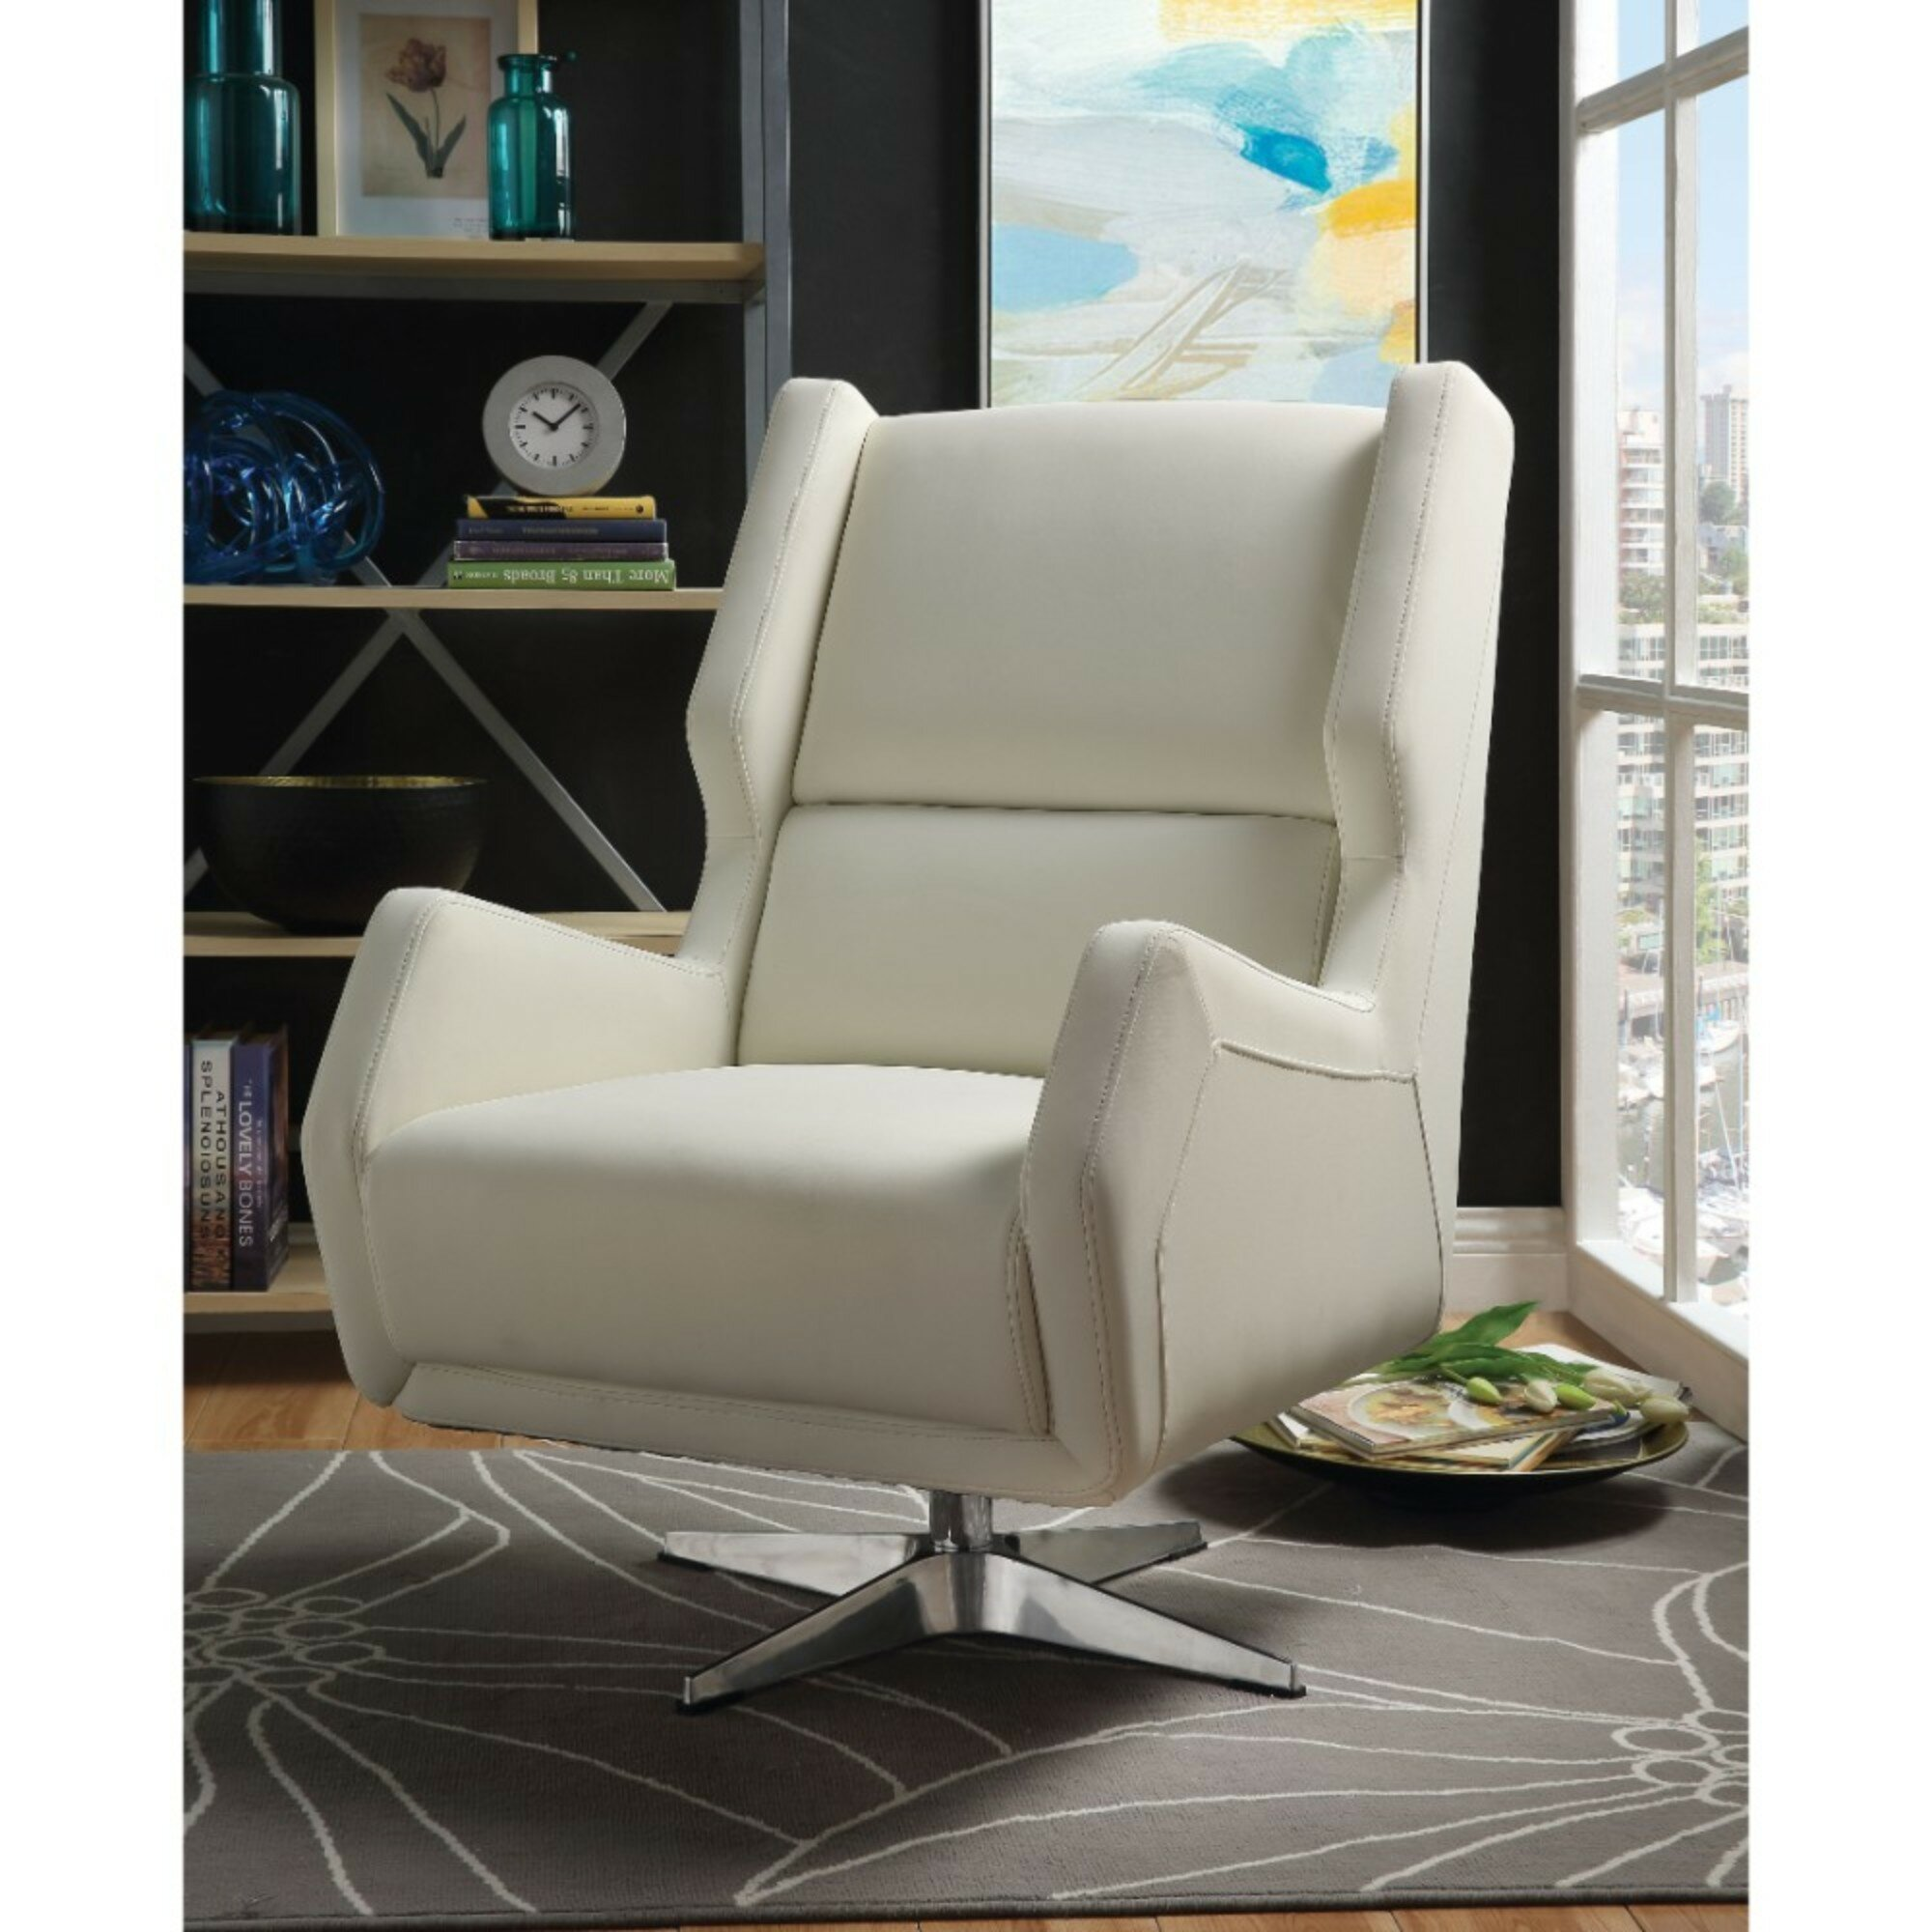 Superb Miamisburg Swivel Wingback Chair Cjindustries Chair Design For Home Cjindustriesco